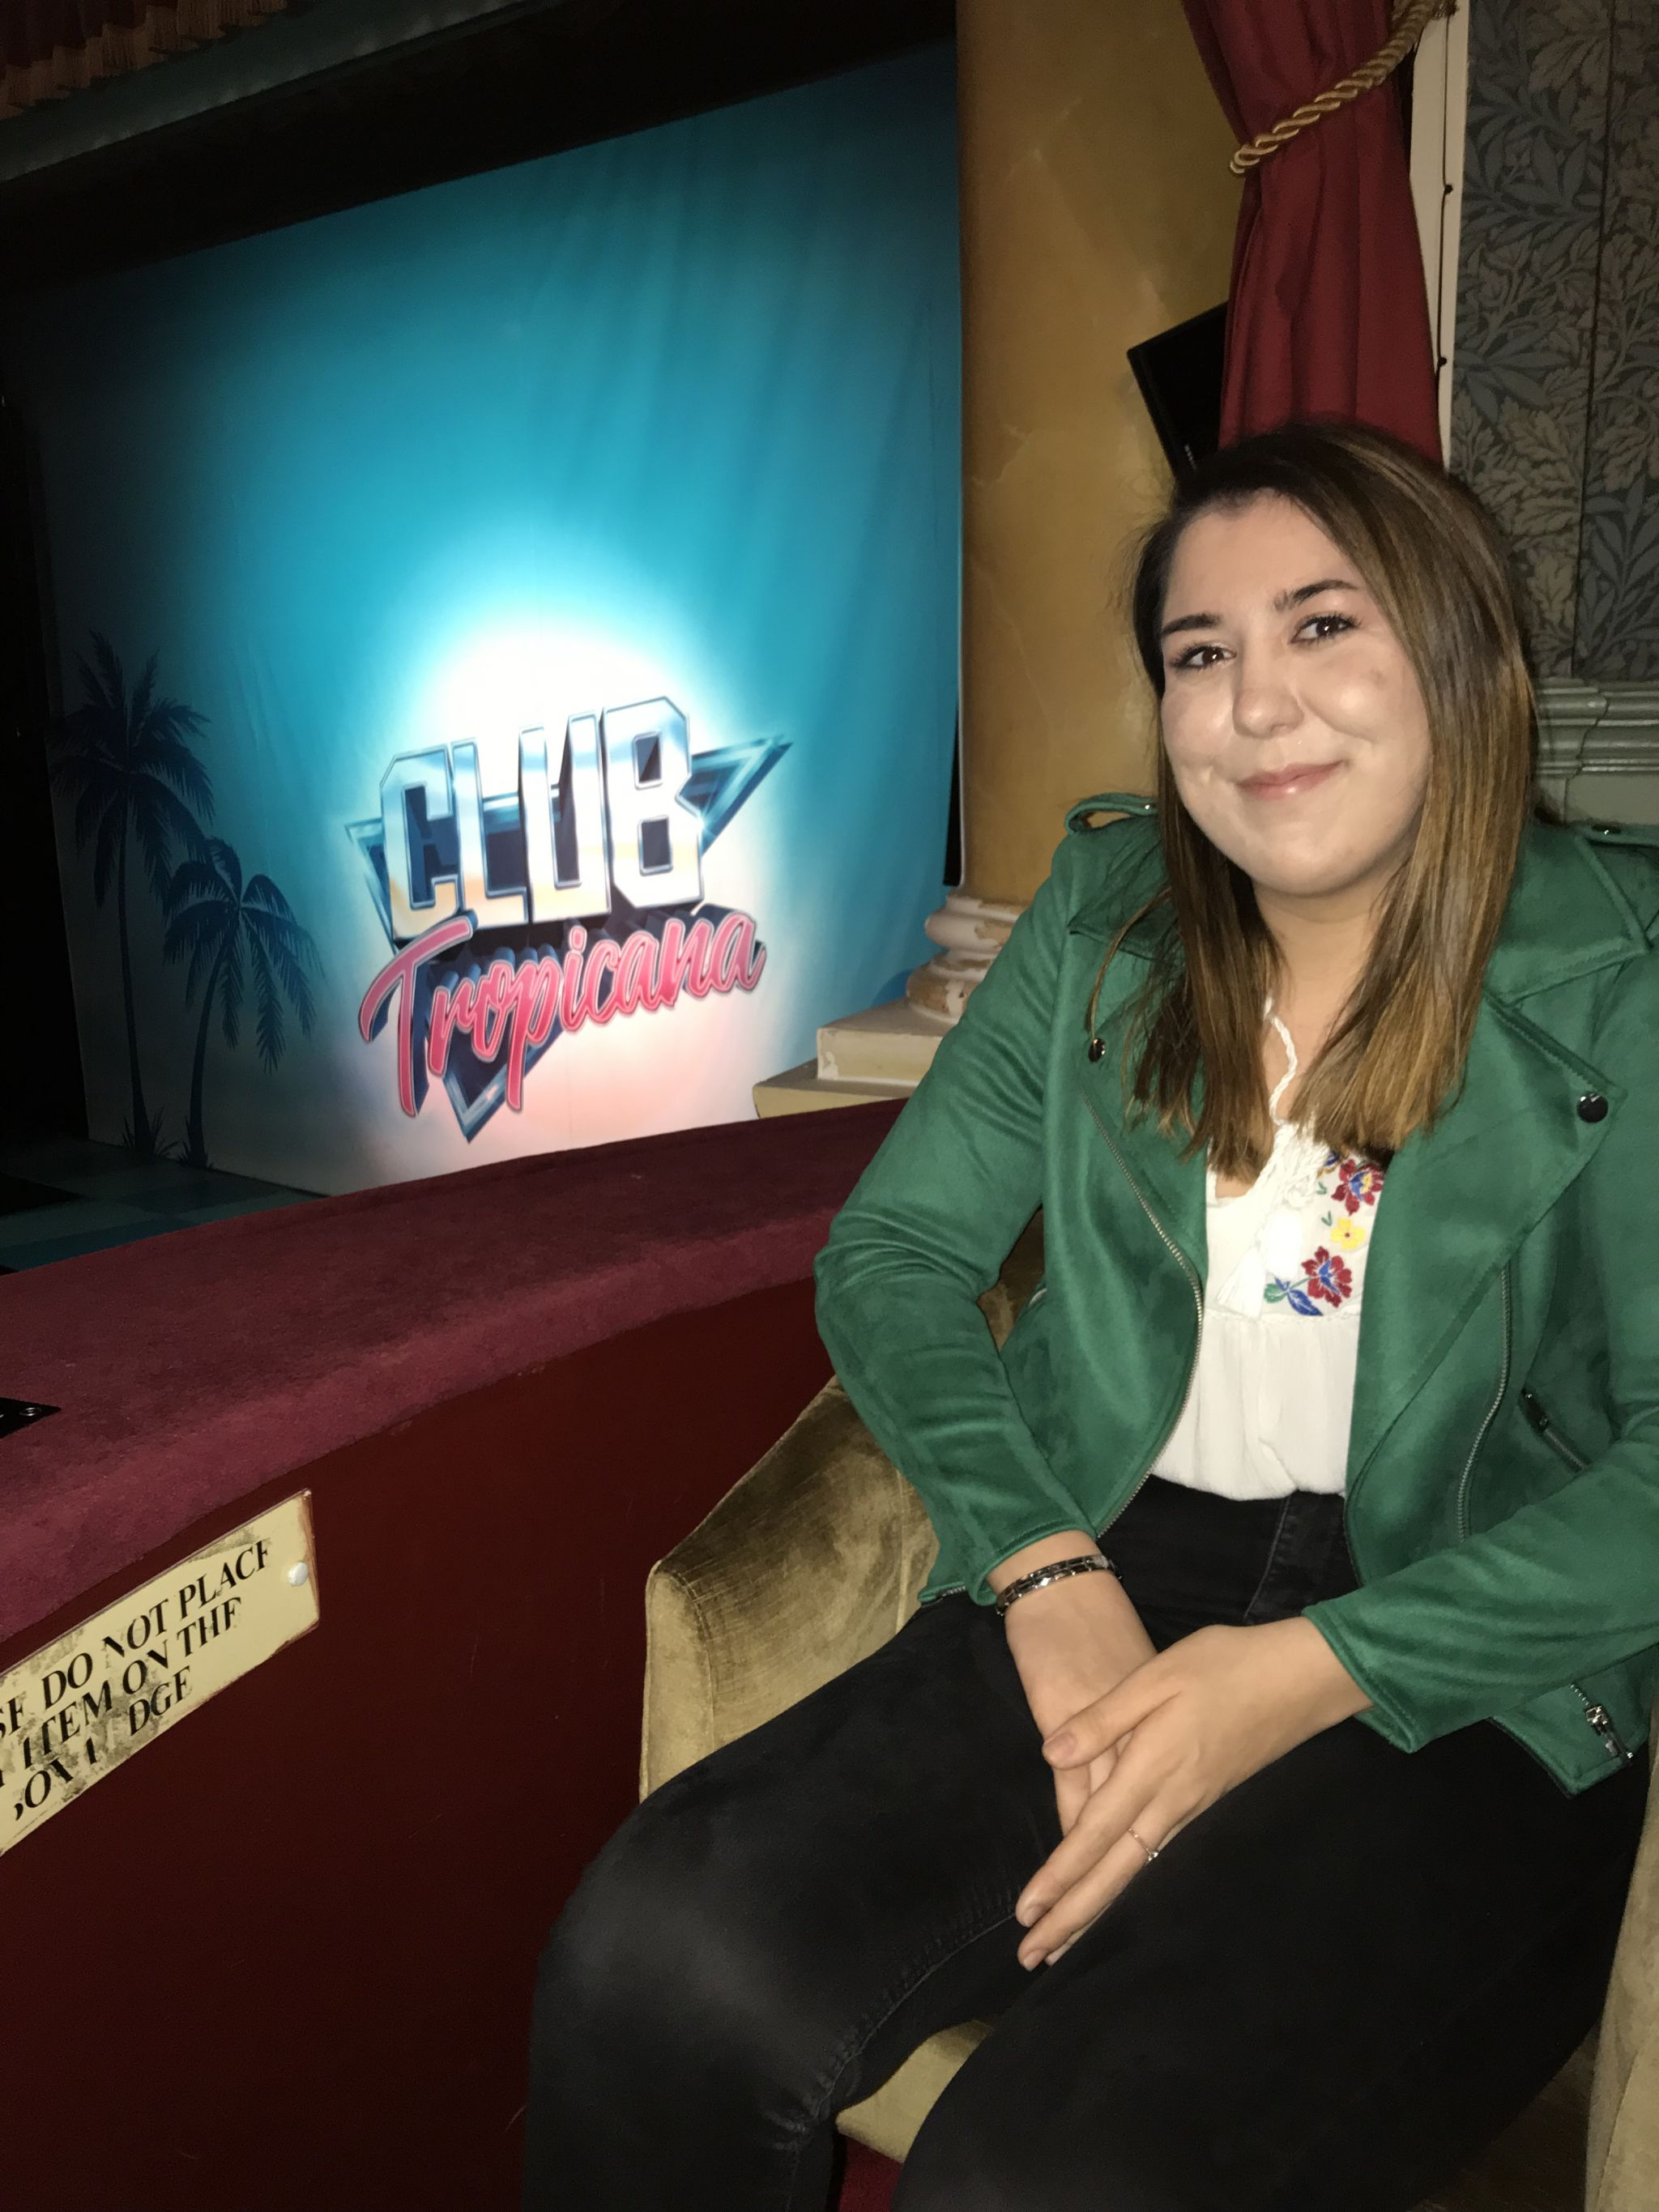 photo of me in the box at the theatre with Club Tropicana in background